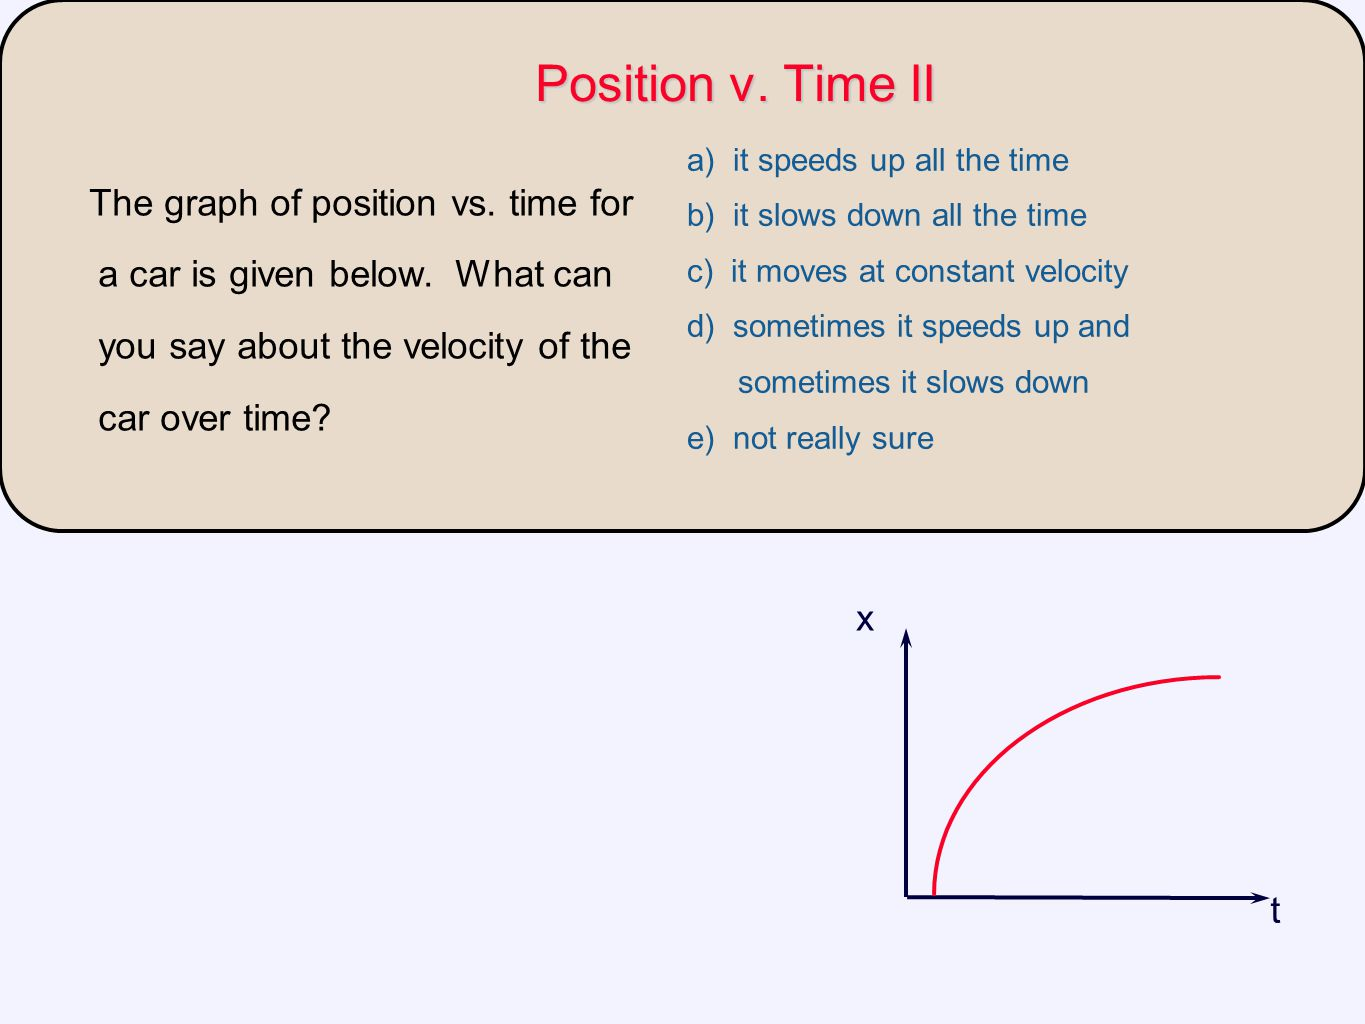 Position v. Time II a) it speeds up all the time. b) it slows down all the time. c) it moves at constant velocity.